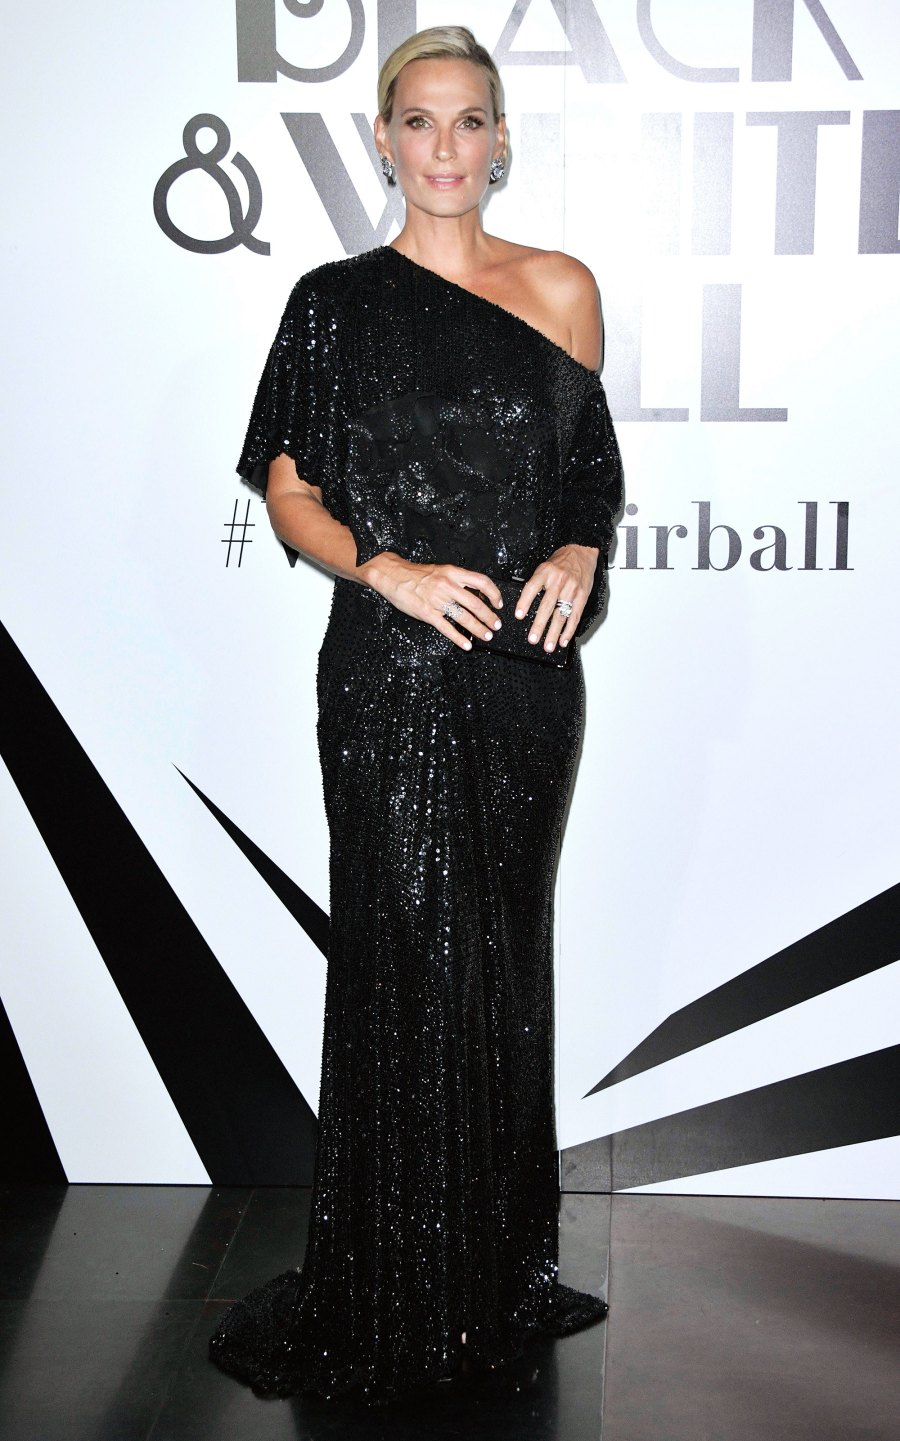 Celebs Wearing Redemption - Molly Sims